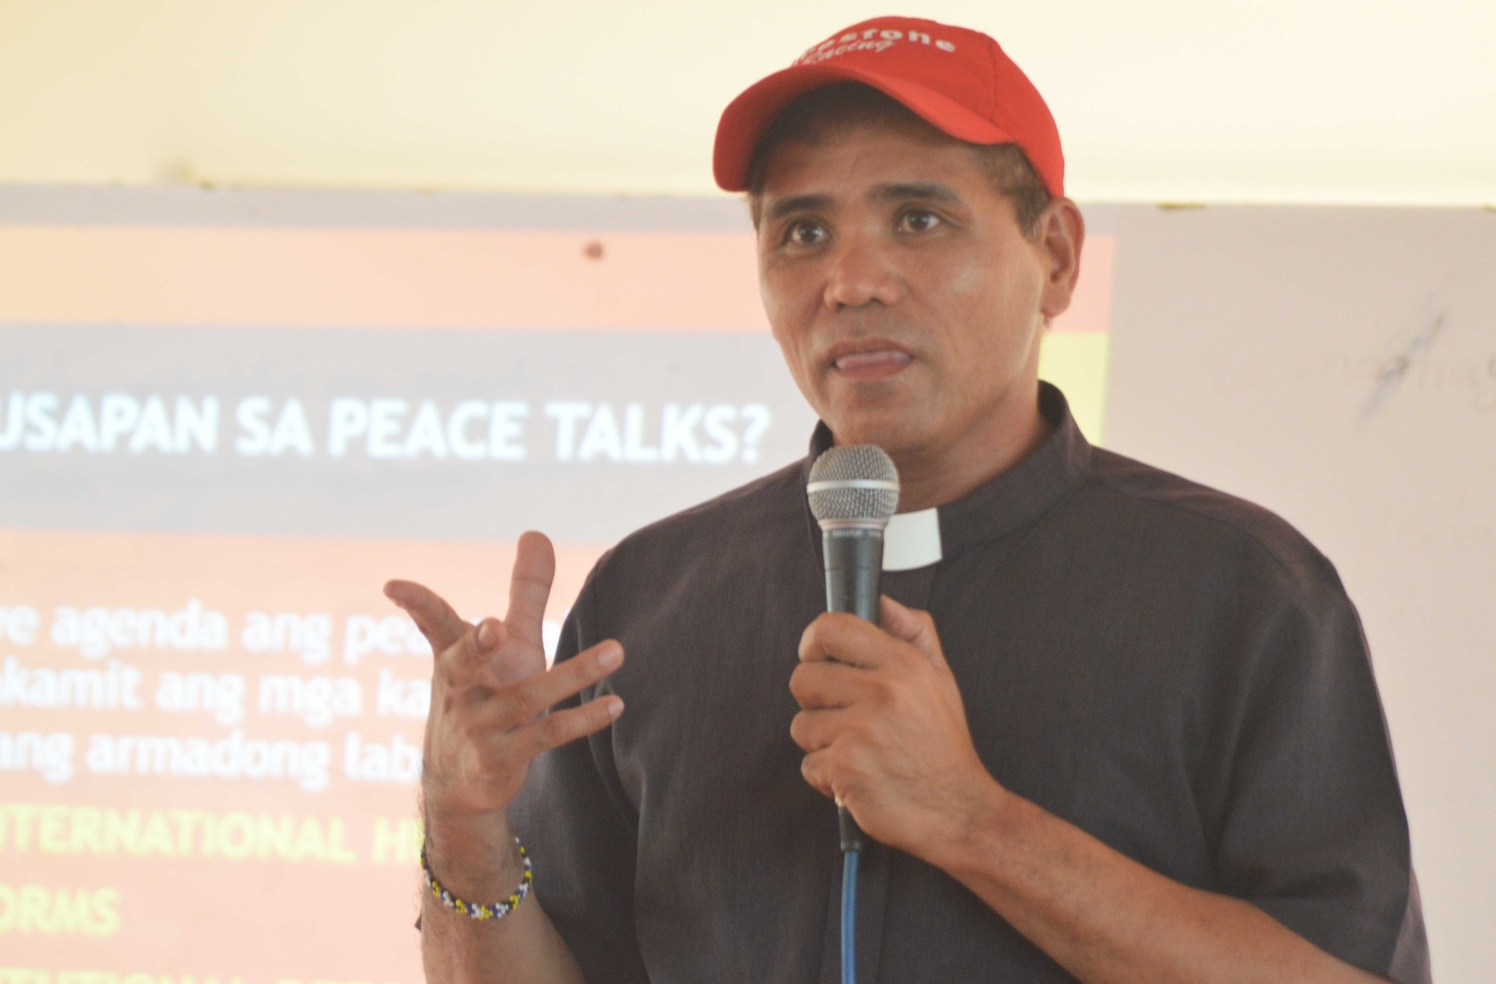 Exodus for Justice and Peace convener Pastor Jurie Jaime is one of the lecturers during the forum on the peace negotiations held at the Pastoral Building of the Redemptorist Church in Davao City on Monday, August 22, 2016. (Medel V. Hernani/davaotoday.com)